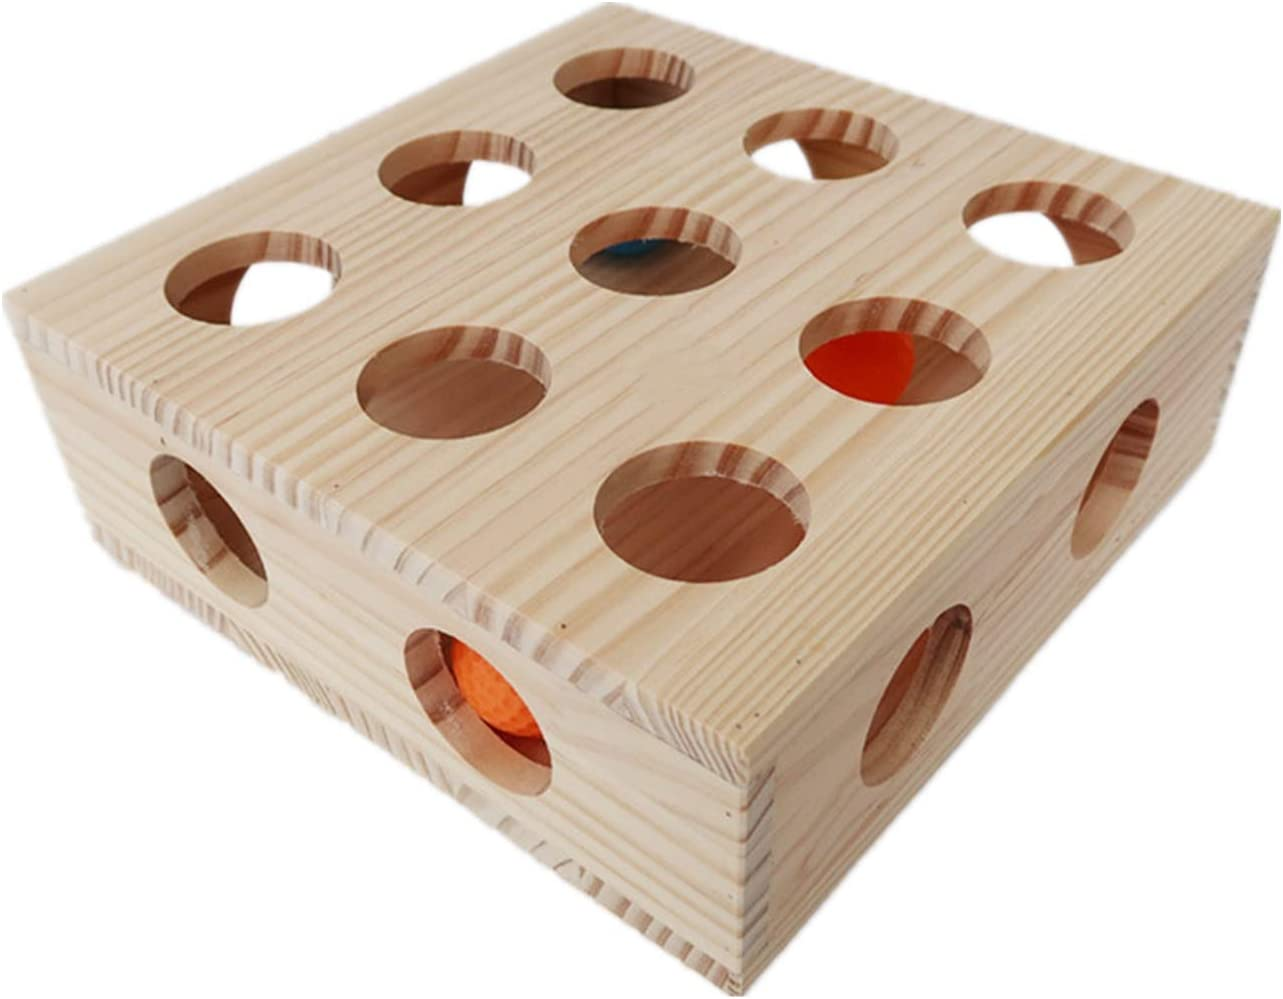 Interactive Cat Toy Puzzle Box Wooden Treat Maze Scratcher Peek Play Toy Box Fun Interactive Cat Toy Fun Hide and Seek Cat Agility Toys